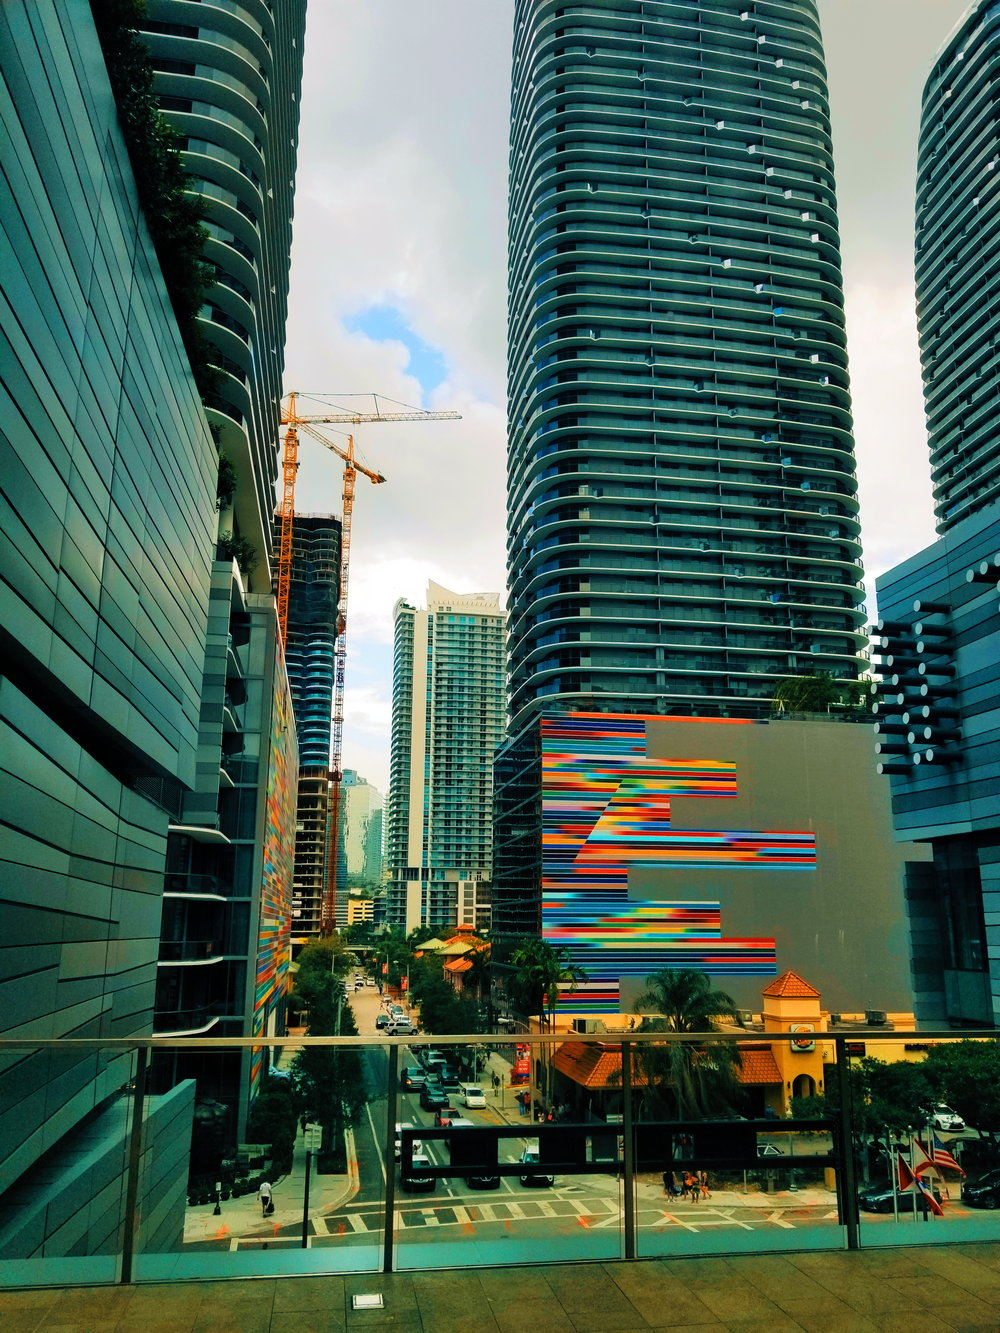 Brickell City Centre, Miami FL